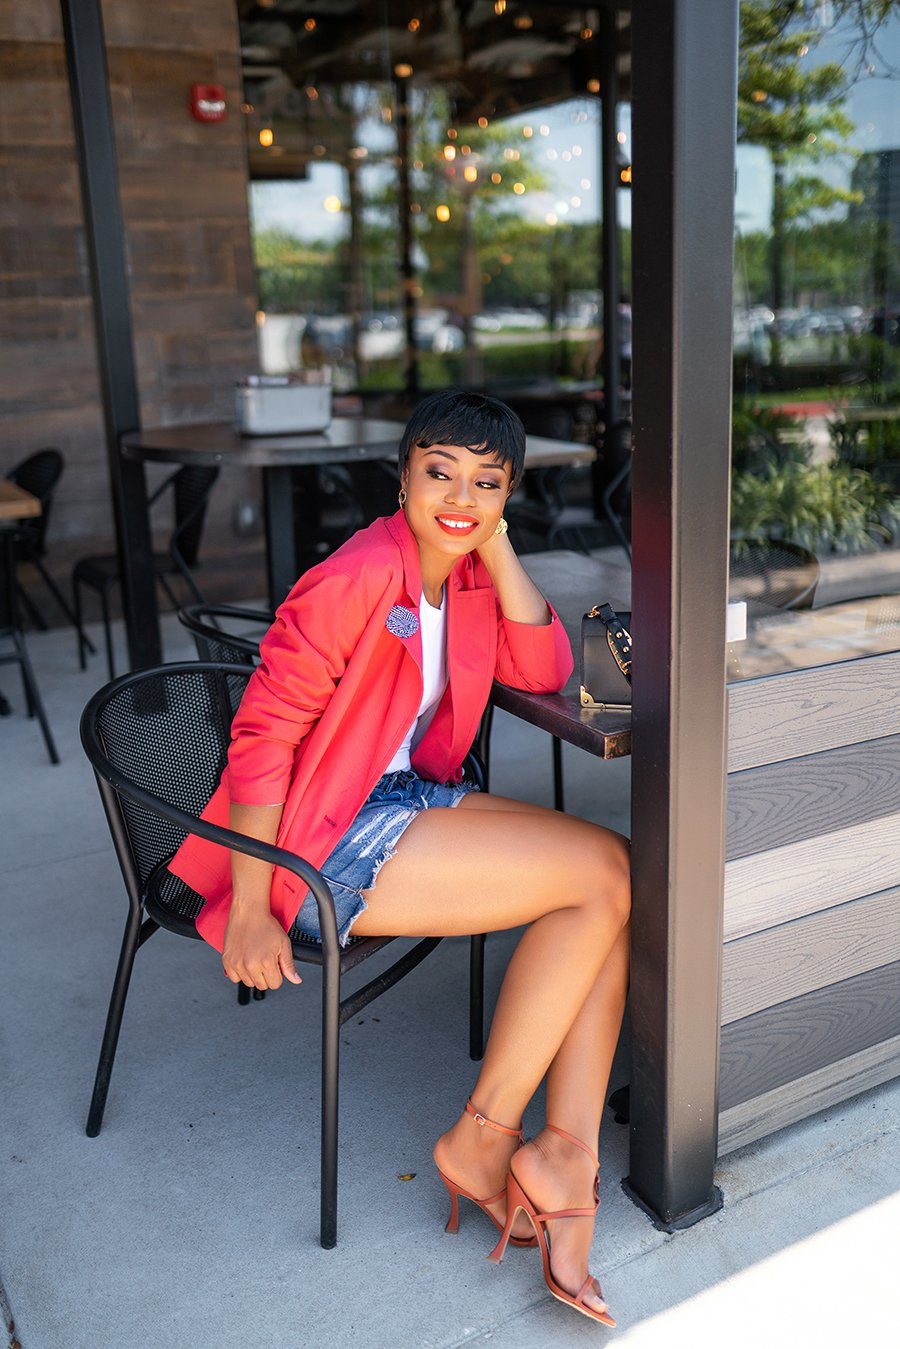 stella-adewunmi-of-jadore-fashion-blog-shares-how-to-style-blazer-and-denim-shorts